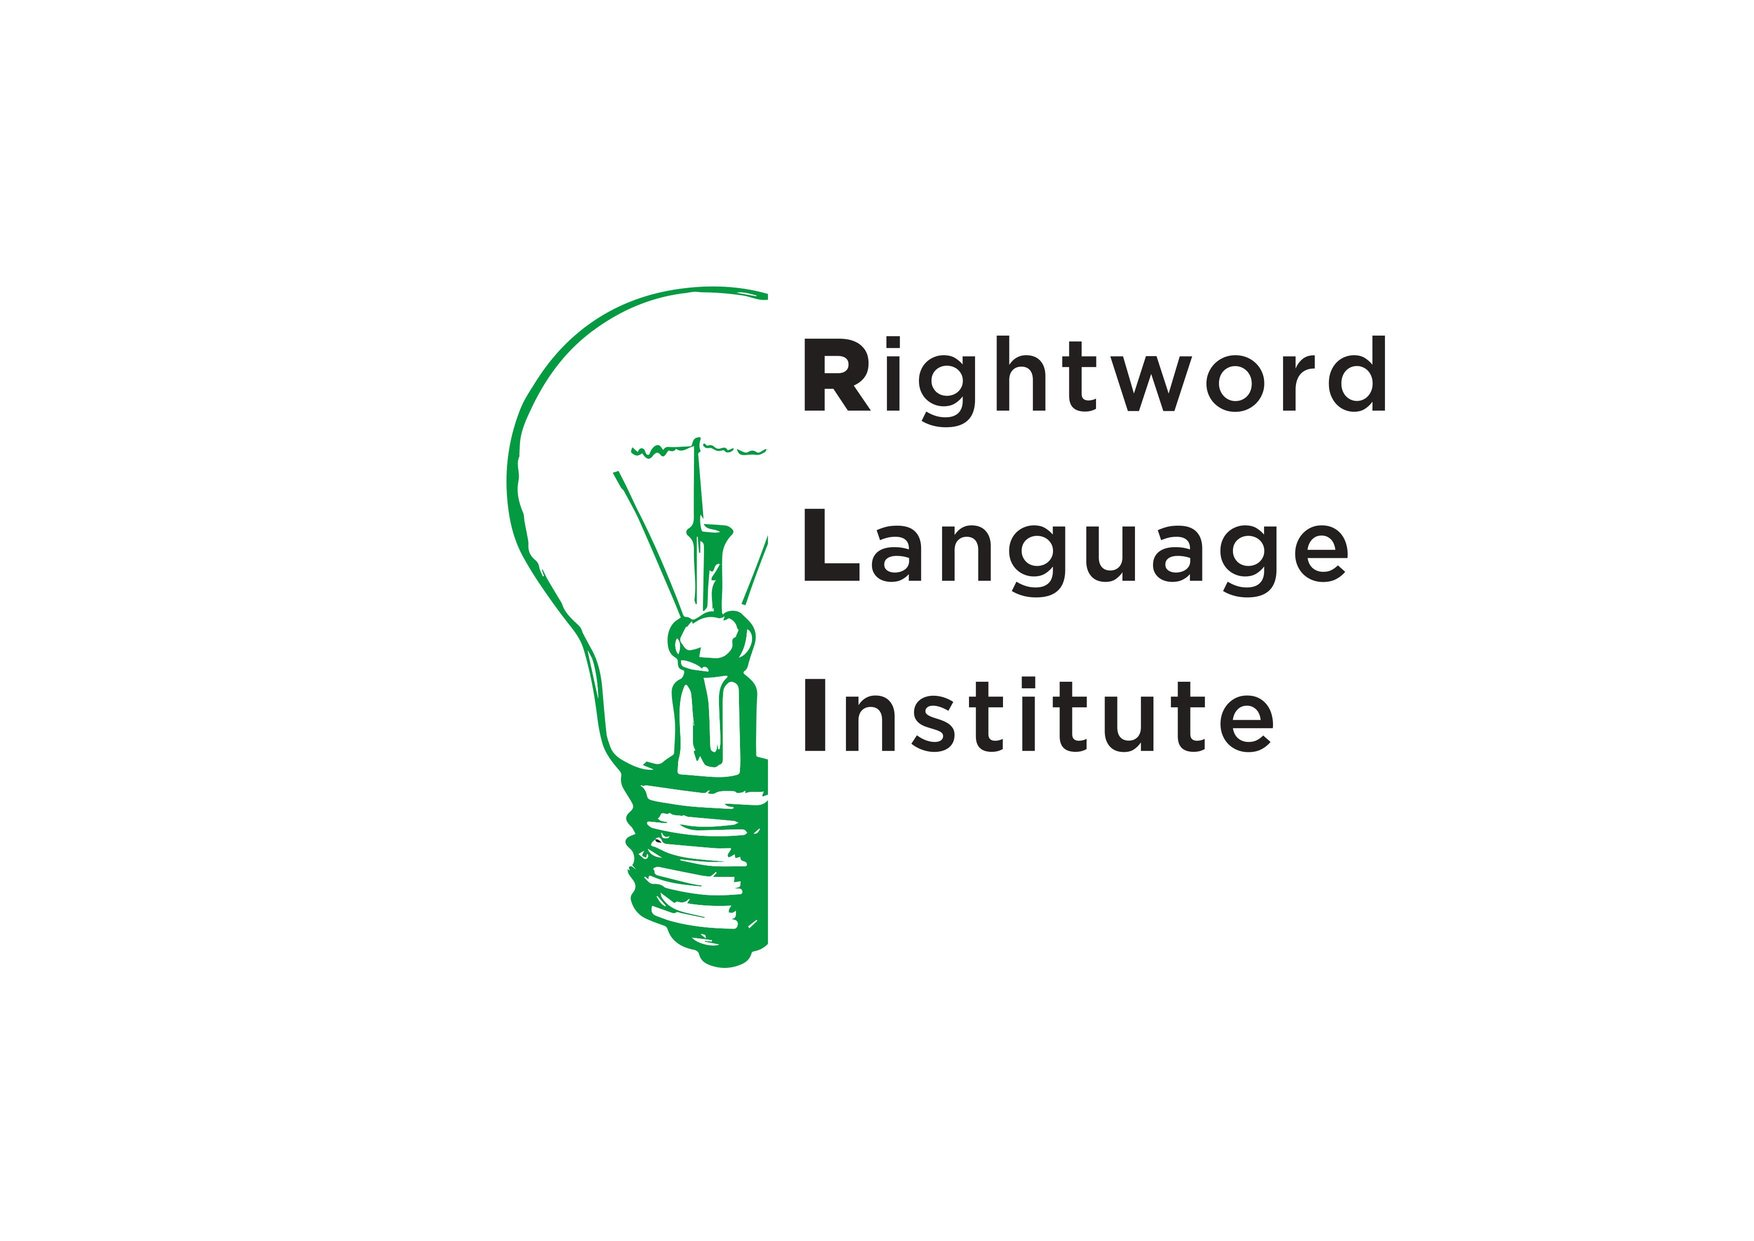 Rightword Language Institute